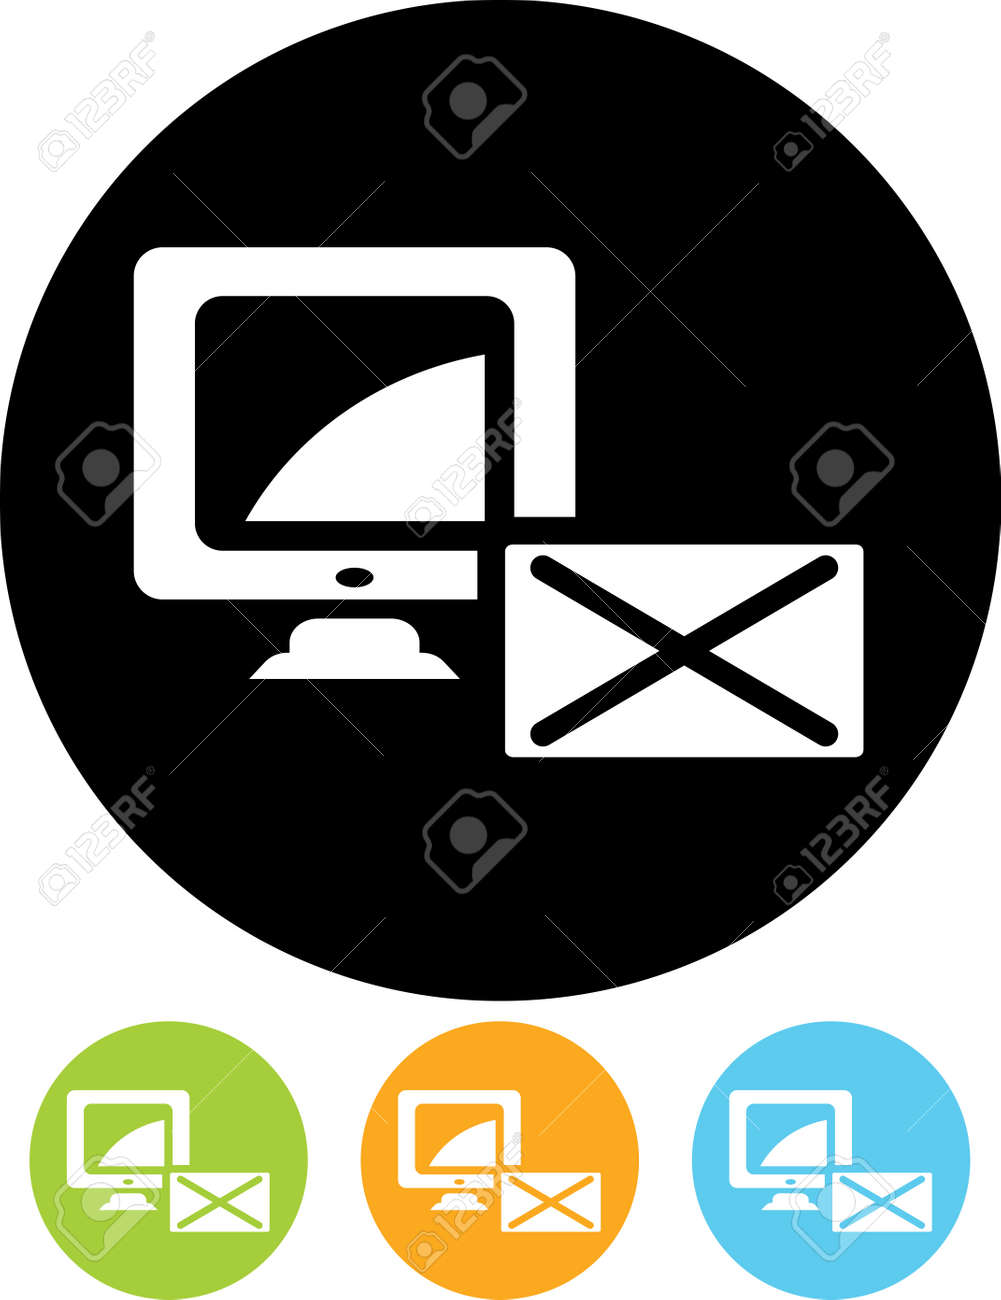 new email message alert vector icon stock vector 53139345